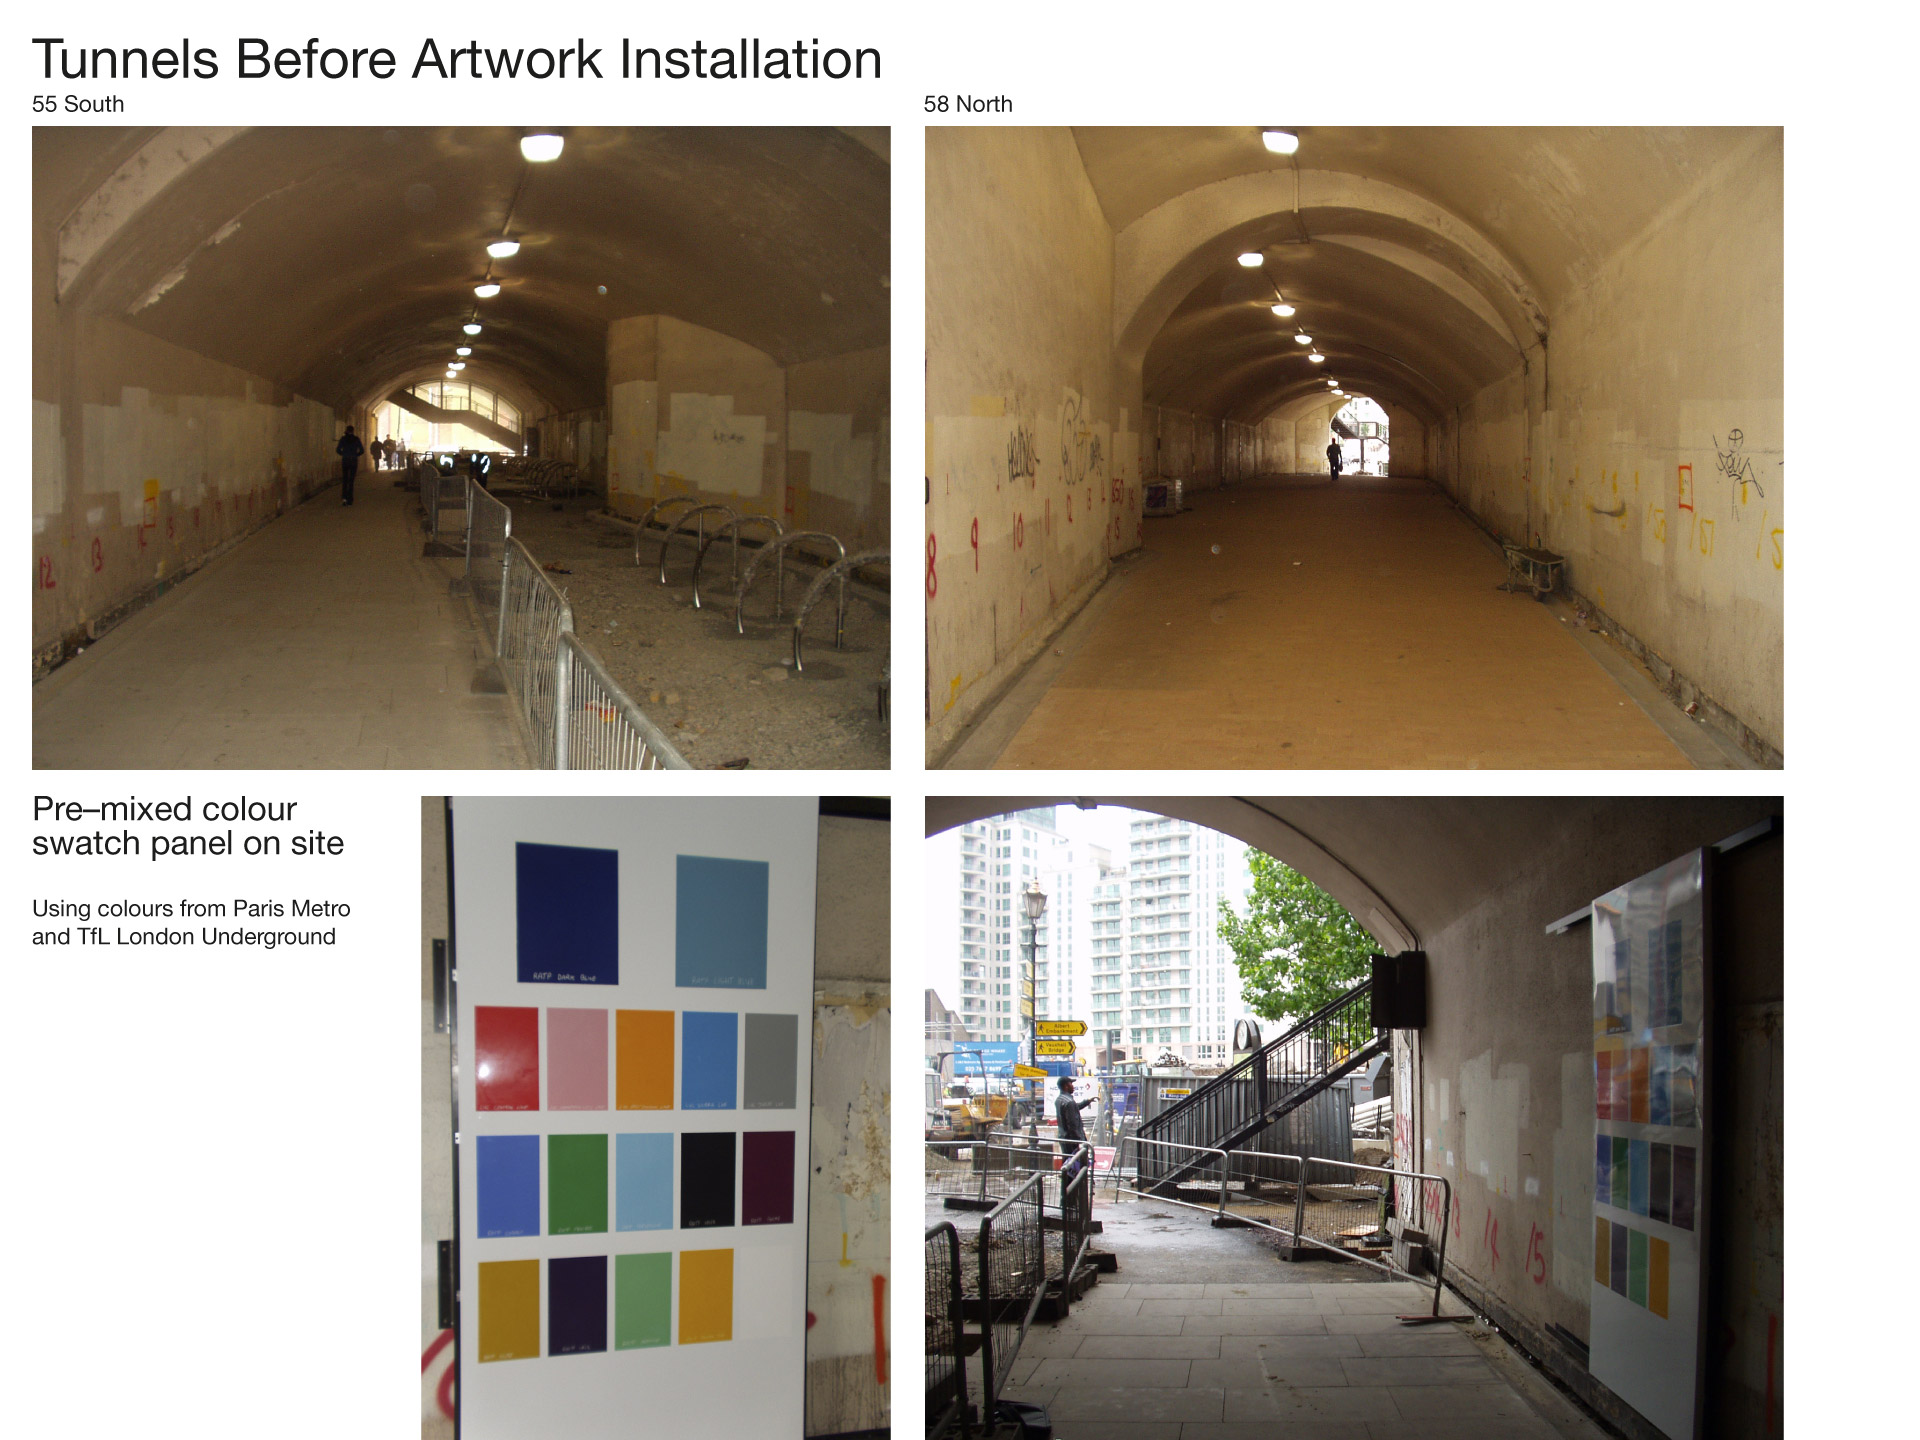 Tunnels before refurbishment with test panel in situ using TfL and Paris Metro colours.